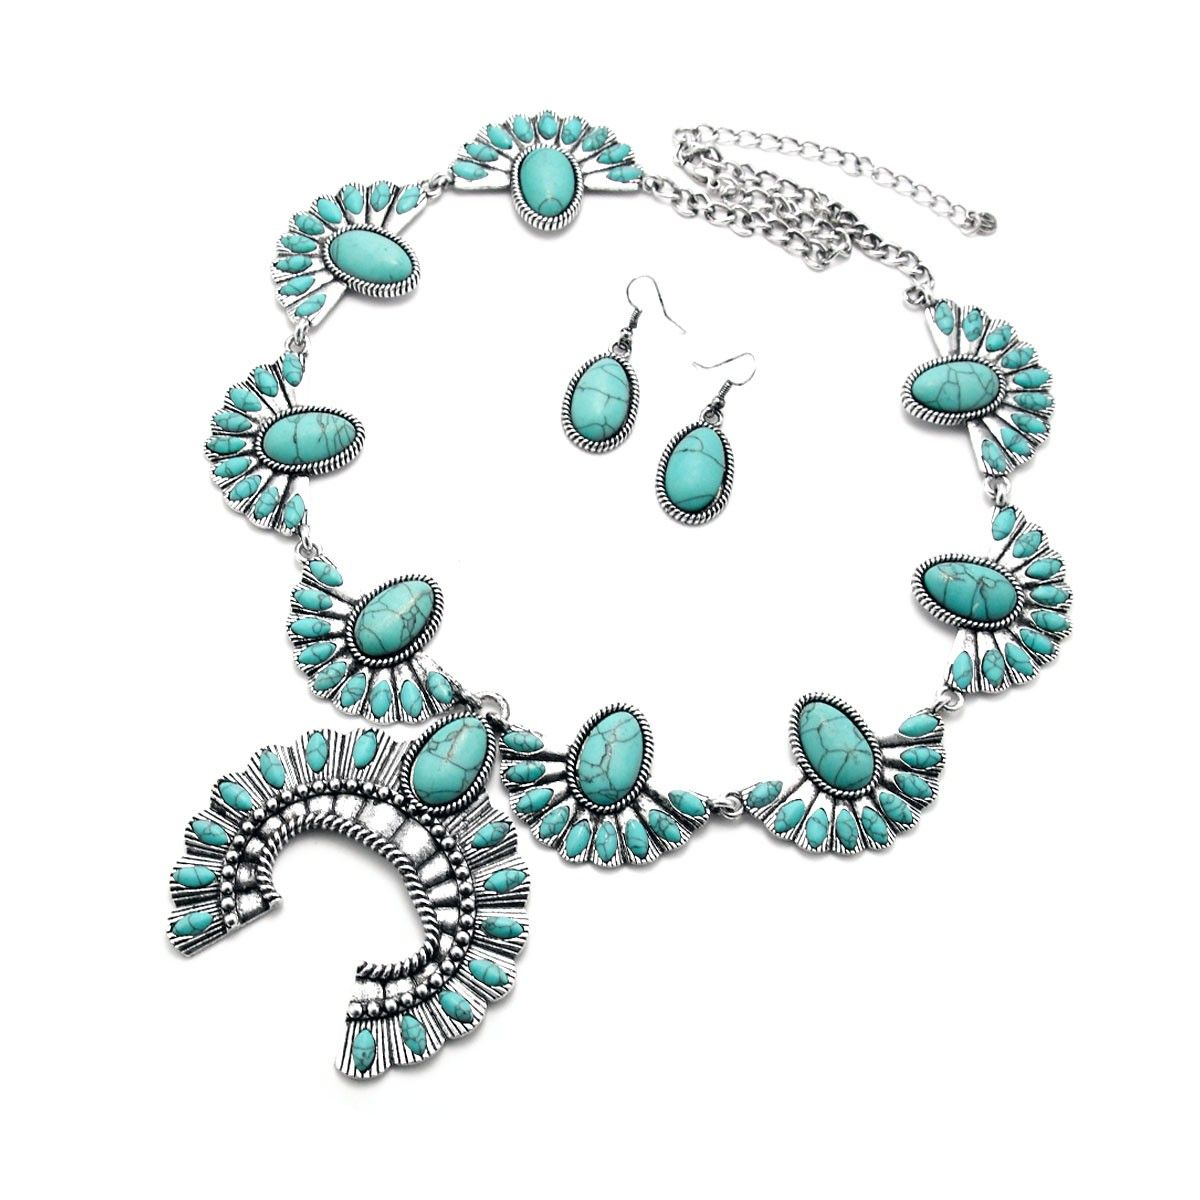 Turquoise Howlite Tribal Necklace and Earring Set